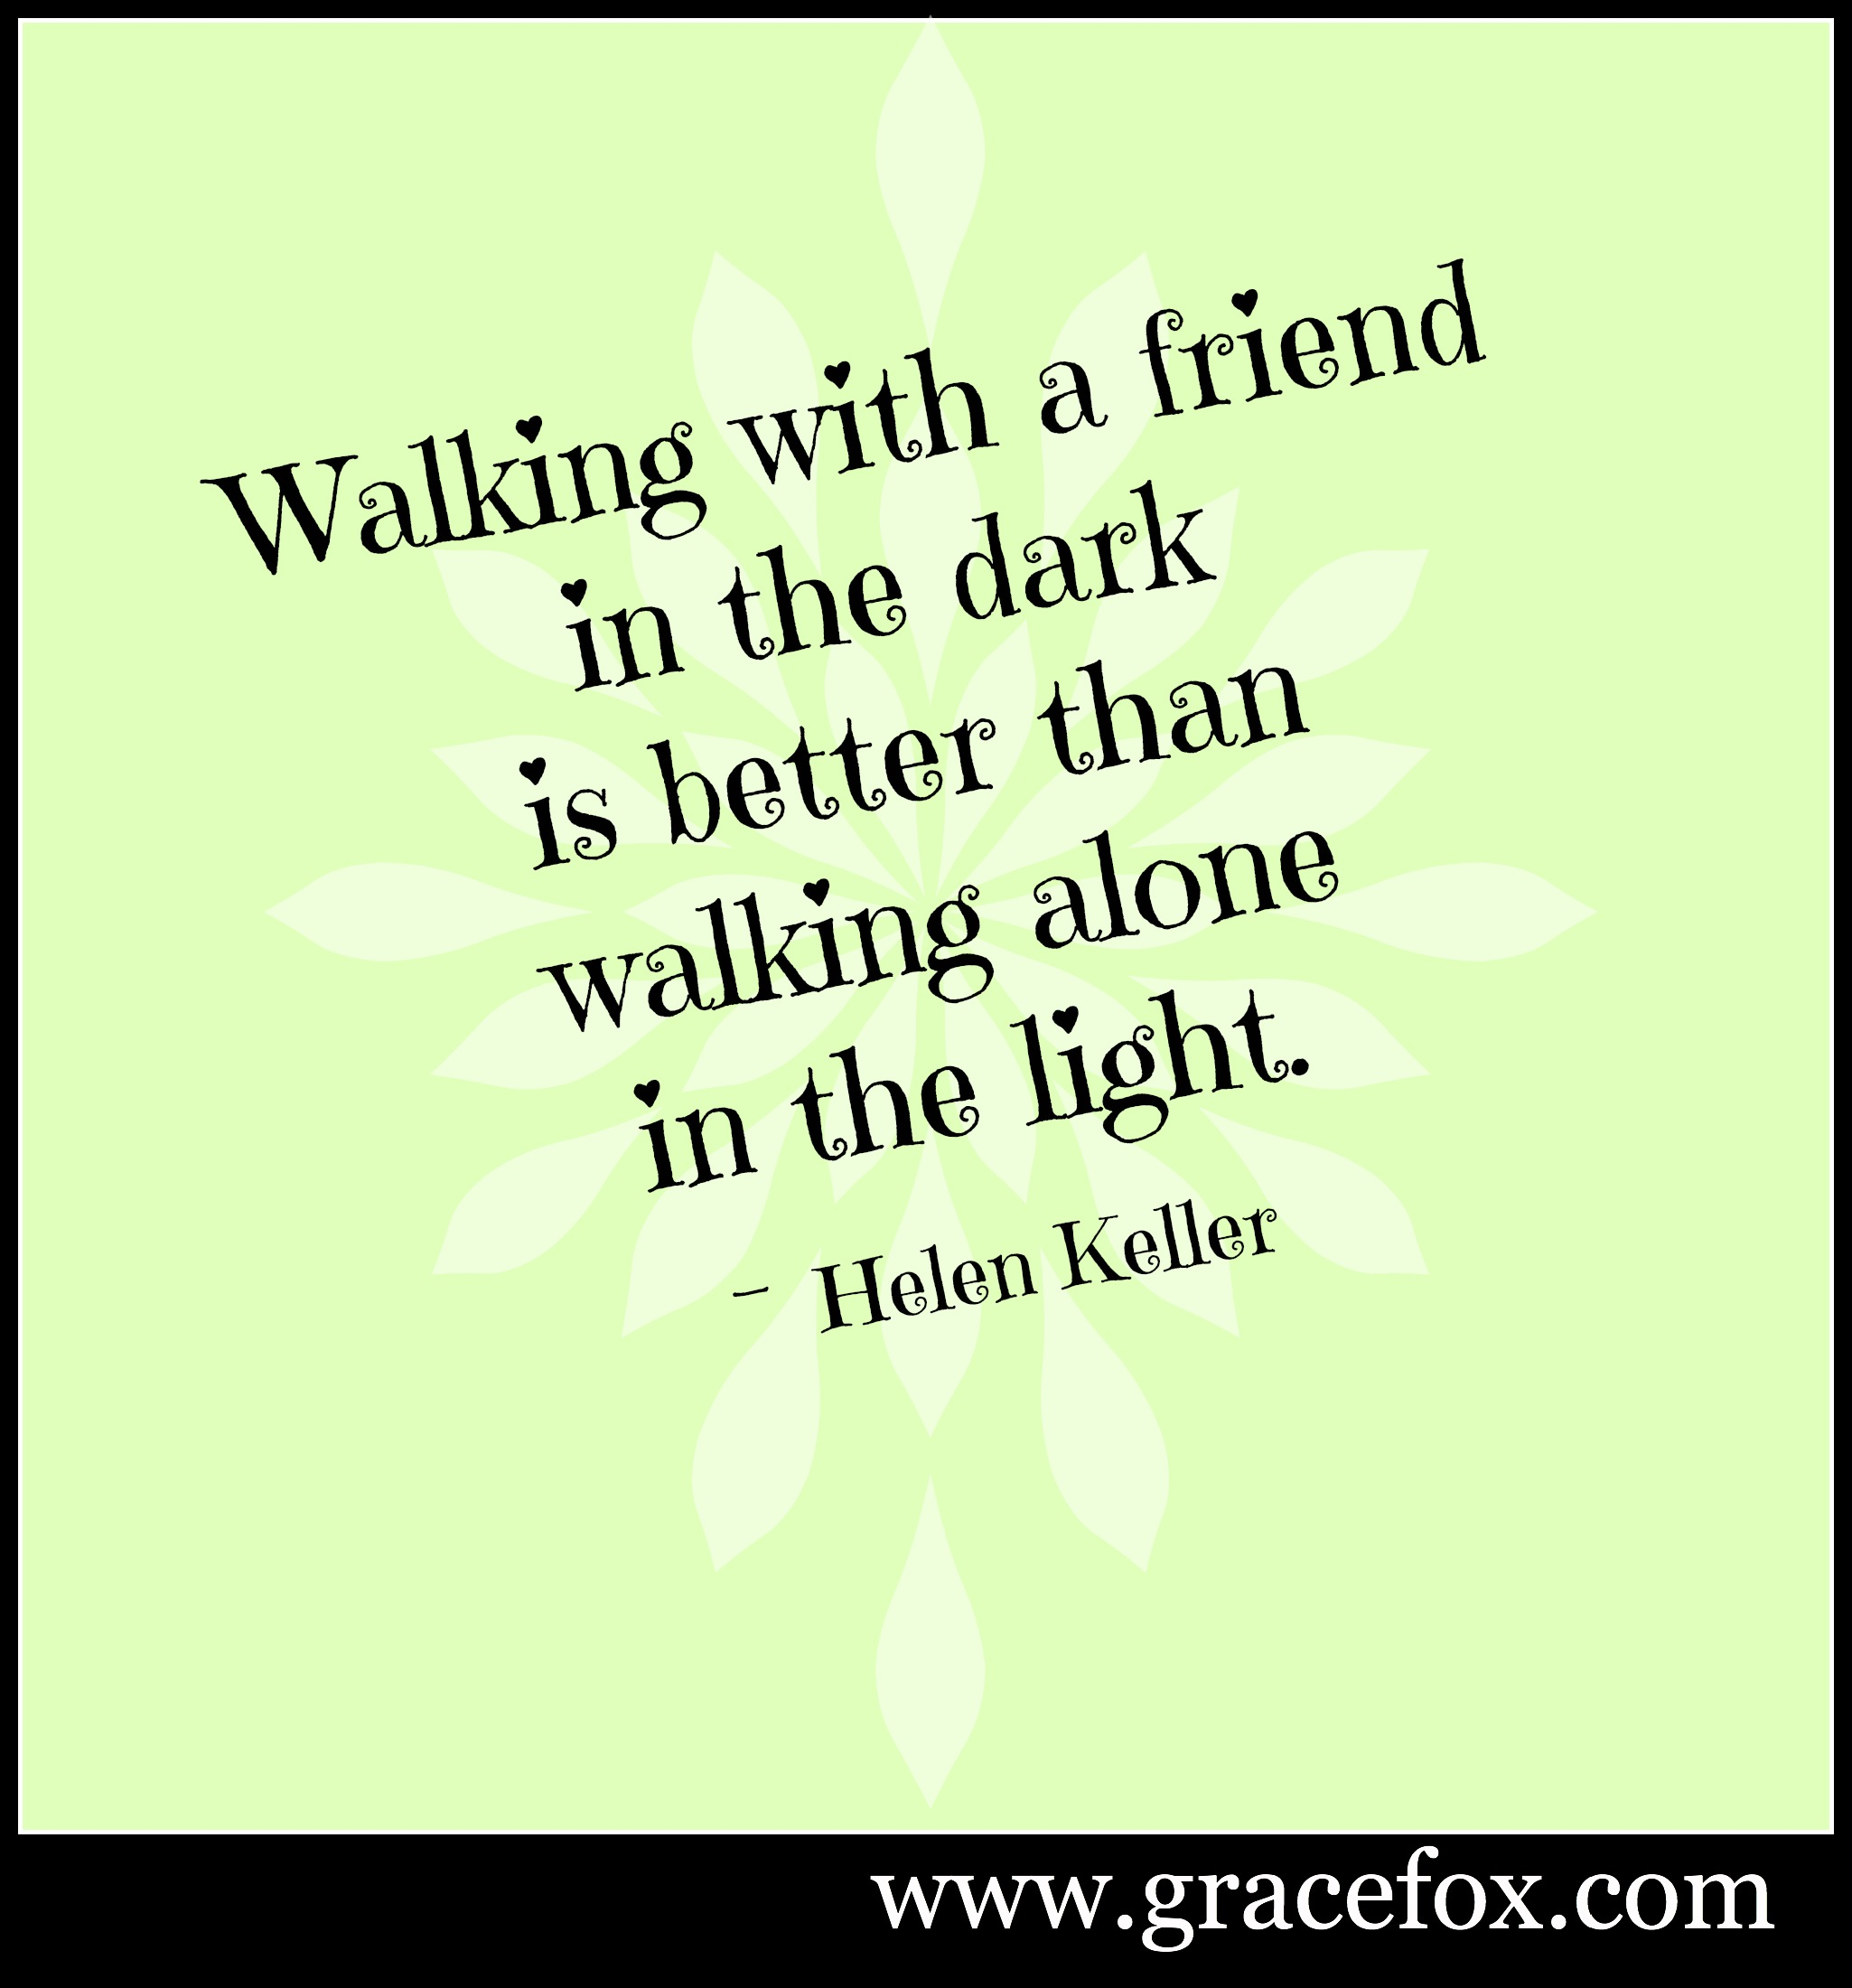 Bible Quotes About Friendship: Bible Quotes About True Friendship. QuotesGram